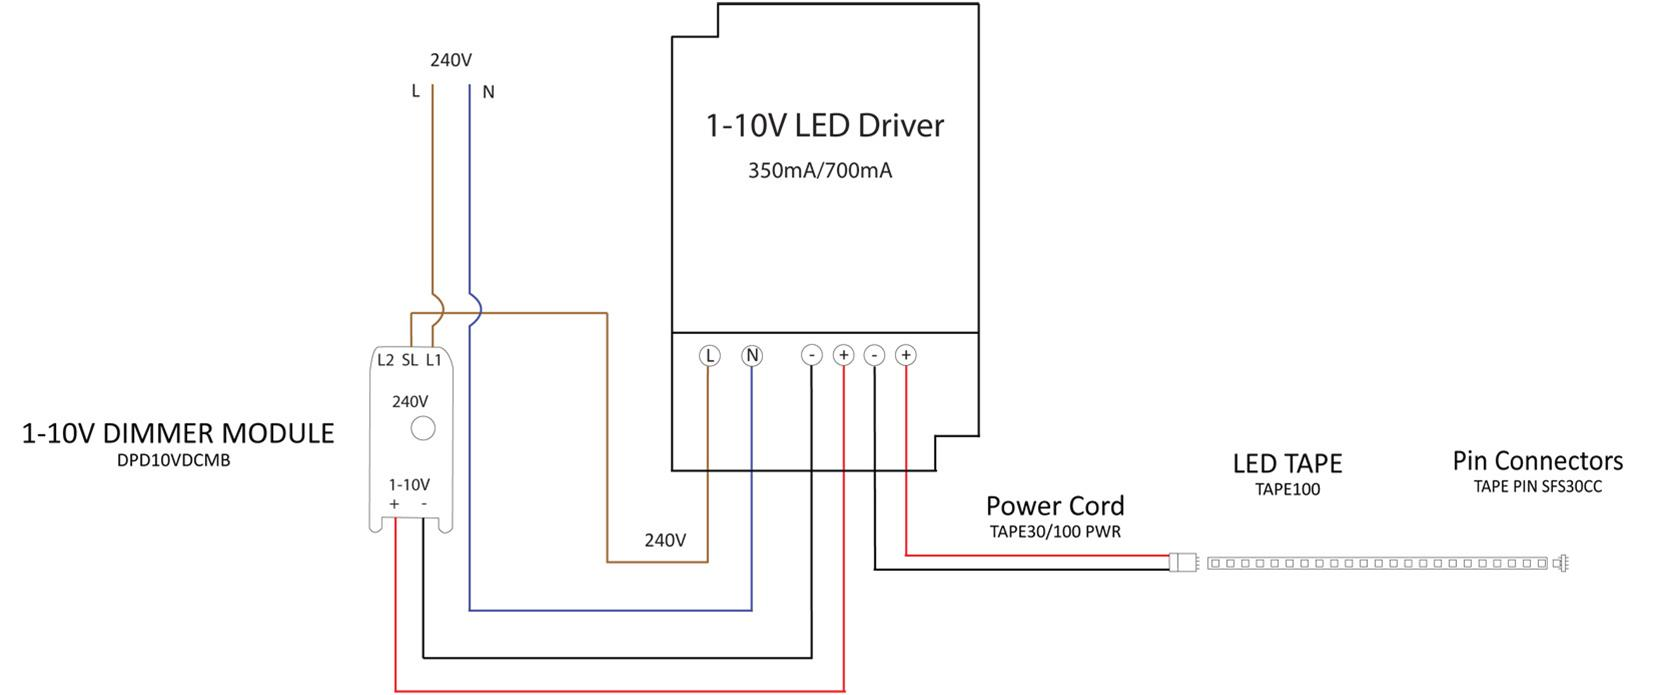 8634_1_10v_dimming_2000 1 10v dimming wiring diagram wiring lighted doorbell button \u2022 free 0 10 volt dimmer wiring diagram at reclaimingppi.co